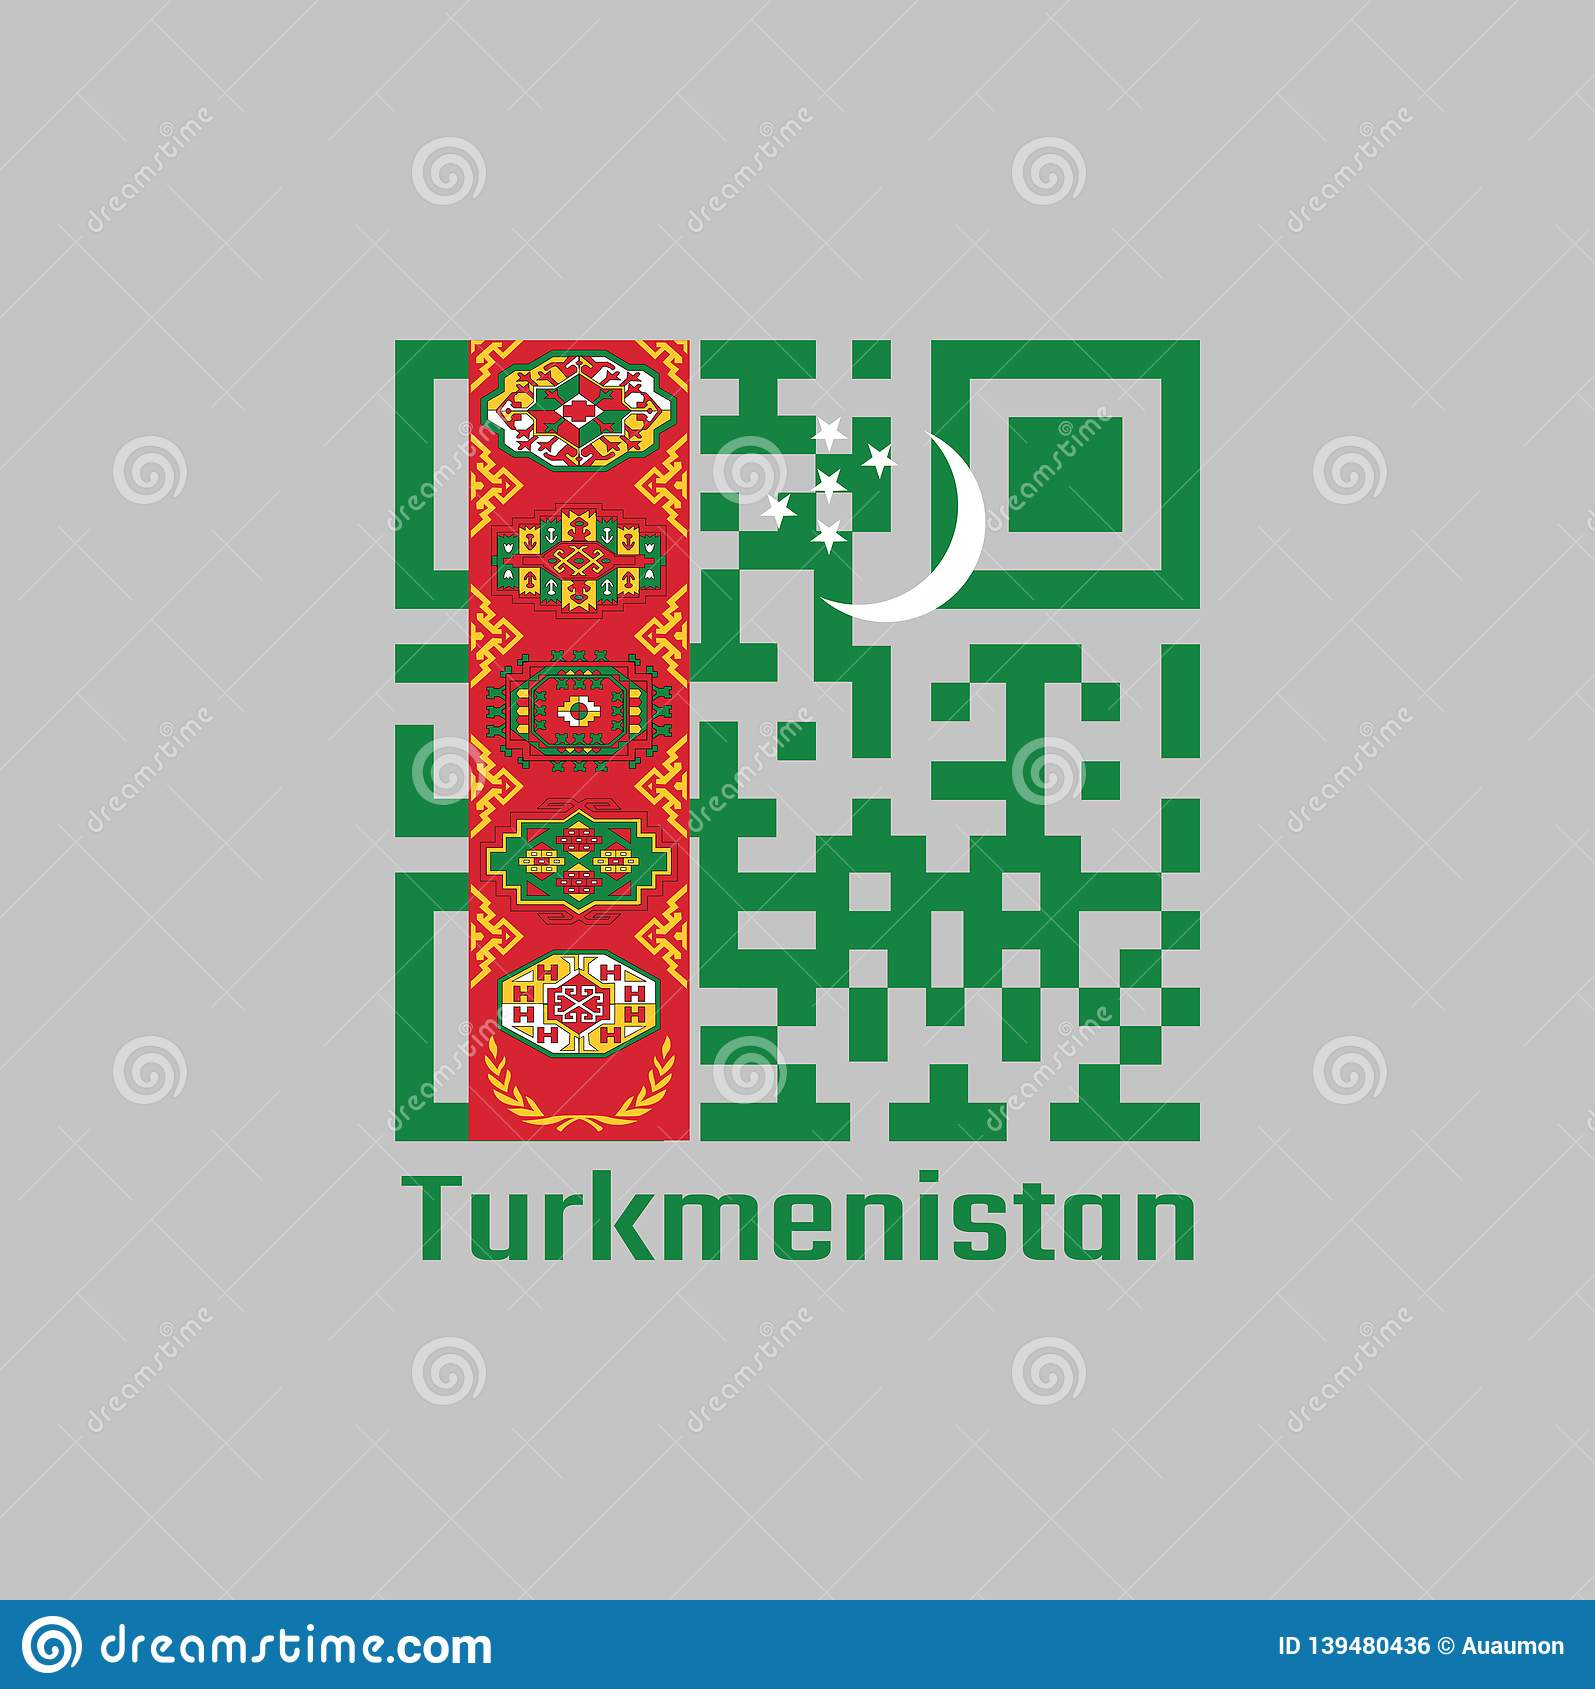 Olive Color Code QR code set the color of Turkmen flag. green field with red stripe  containing five carpet guls stacked above two crossed olive branches;  crescent and stars ...